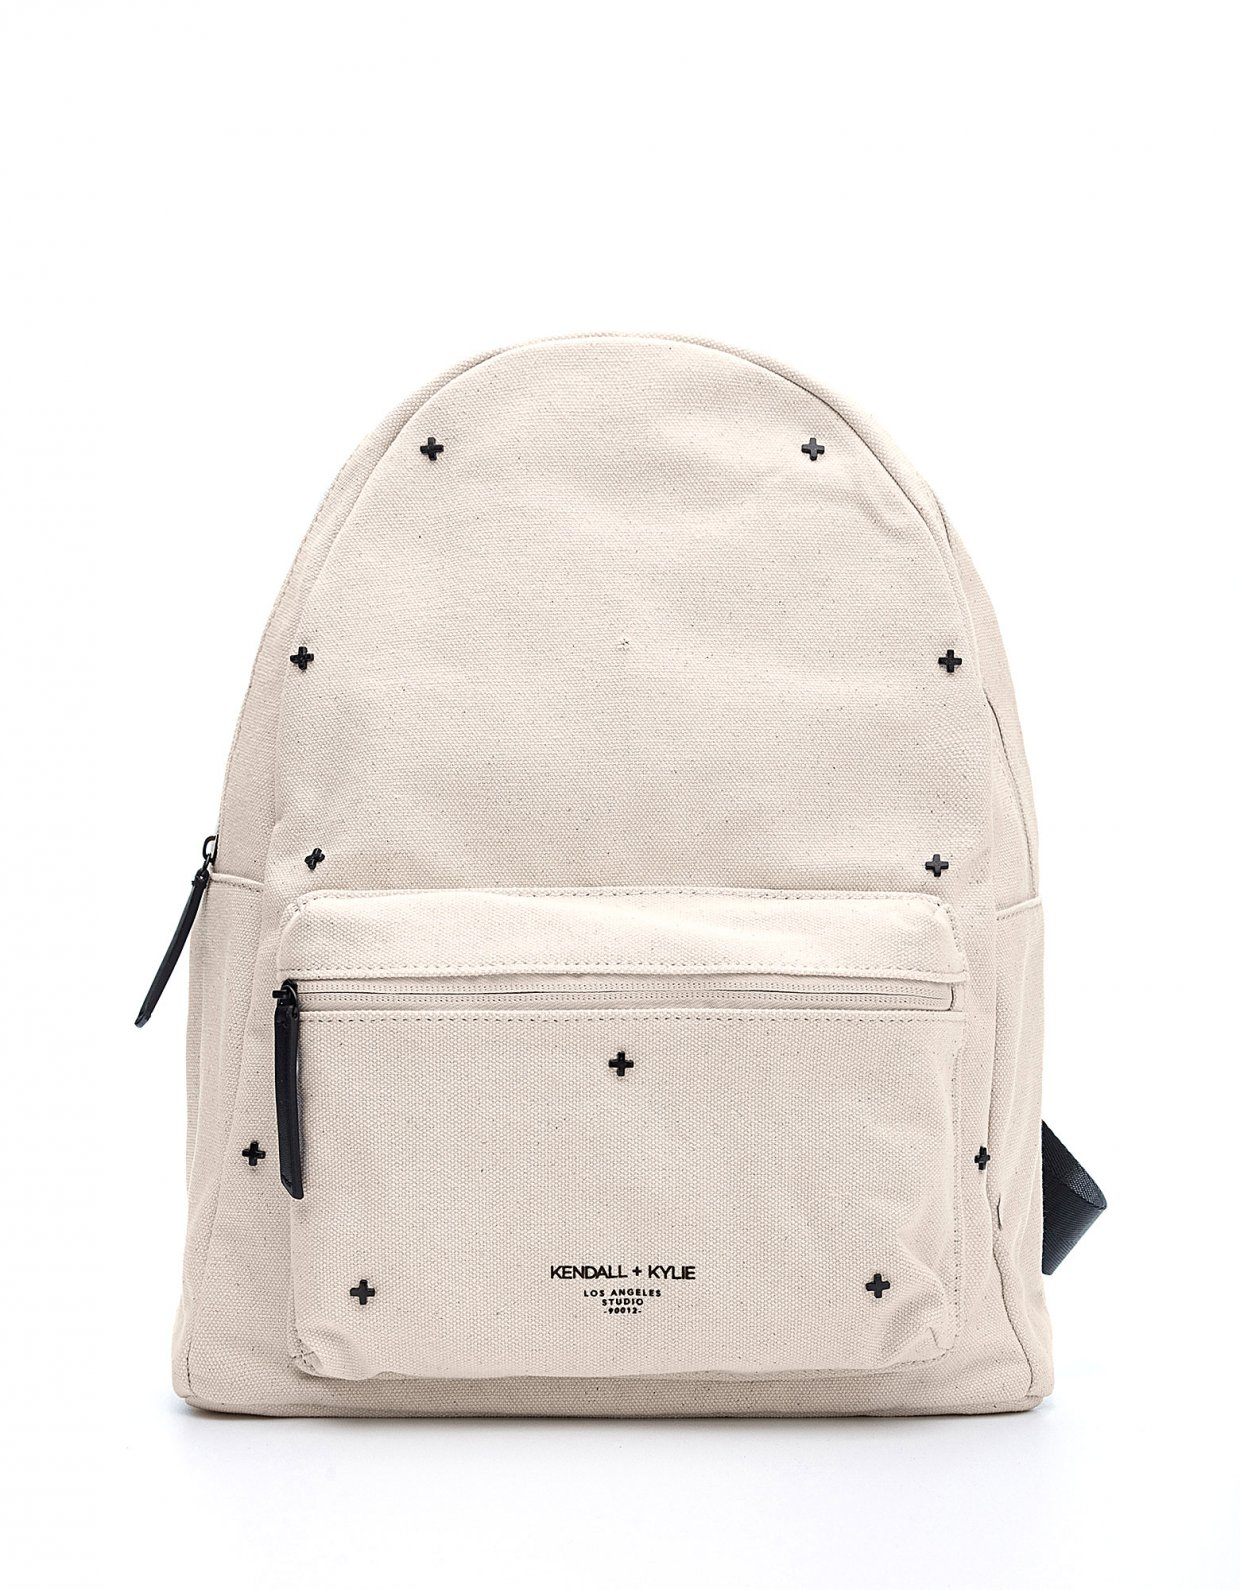 Kendall + Kylie Cora large backpack natural canvas